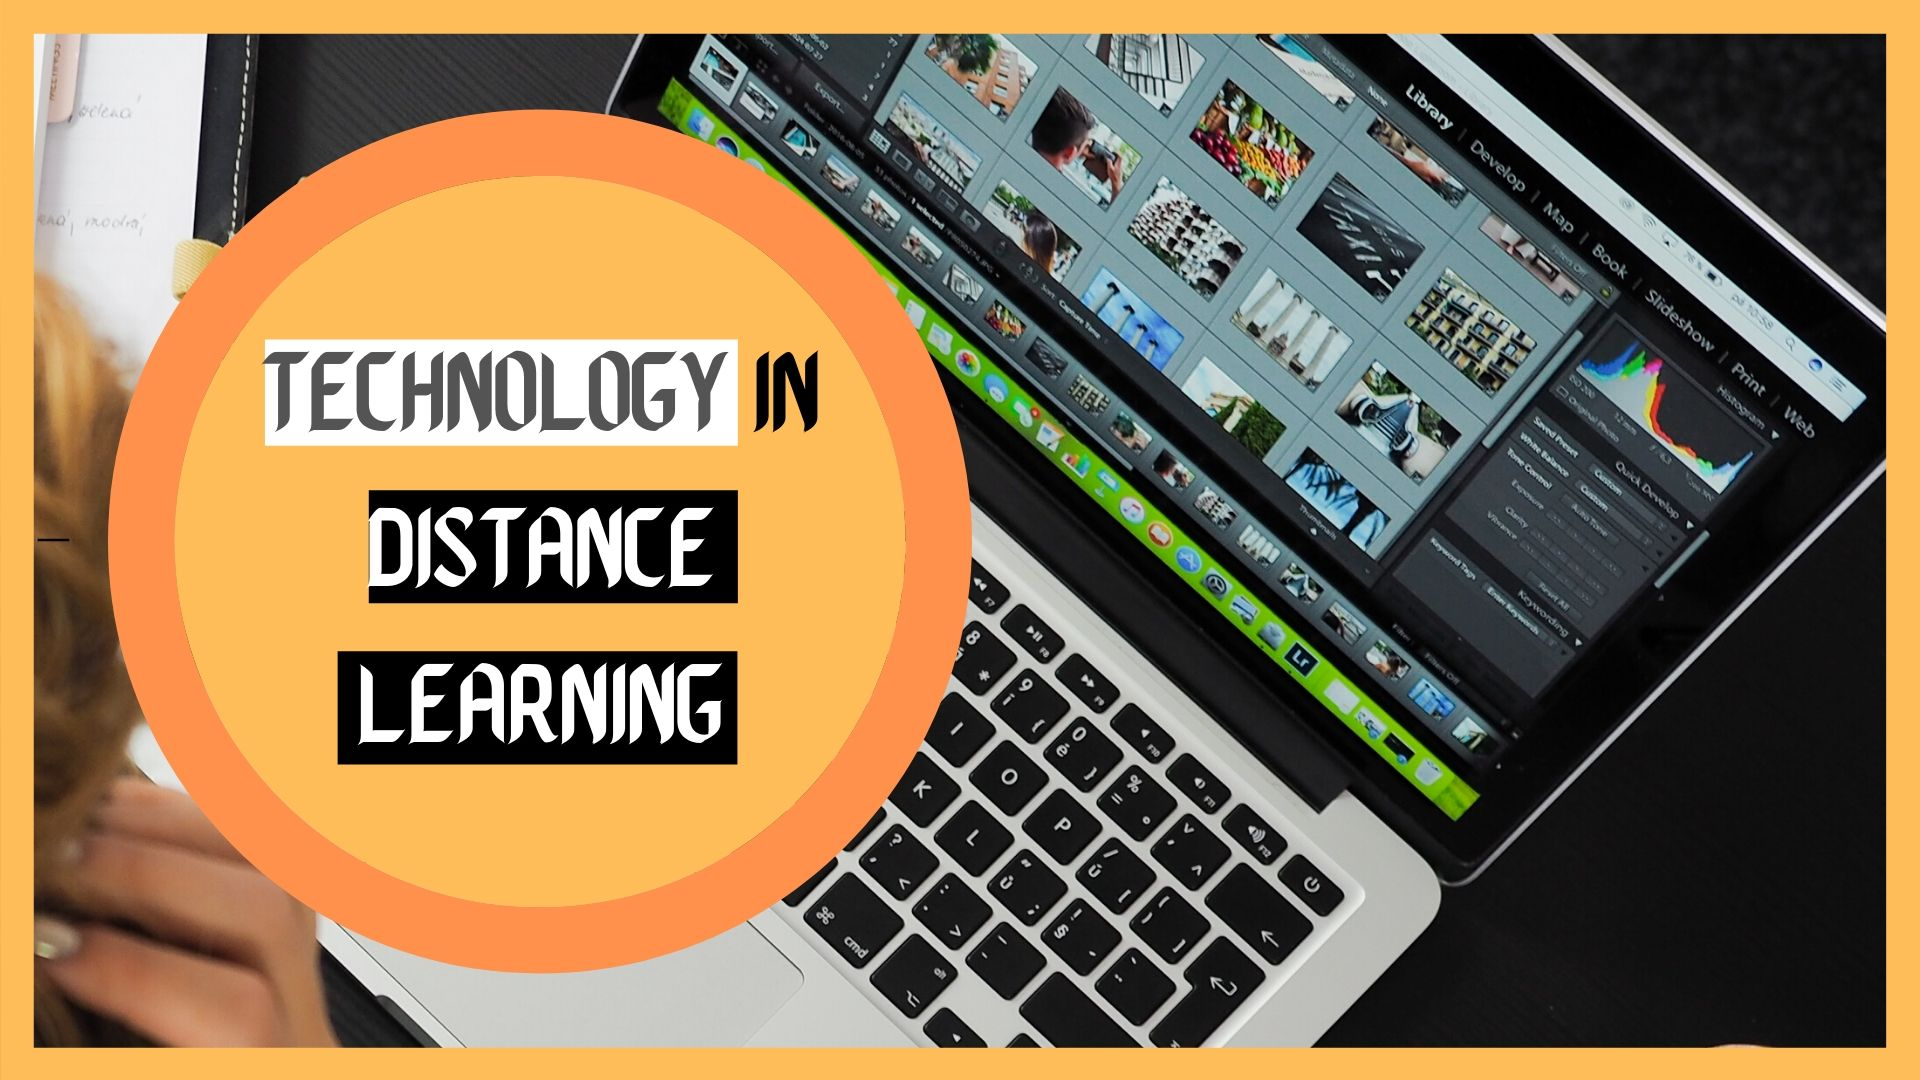 Technology in Distance Education